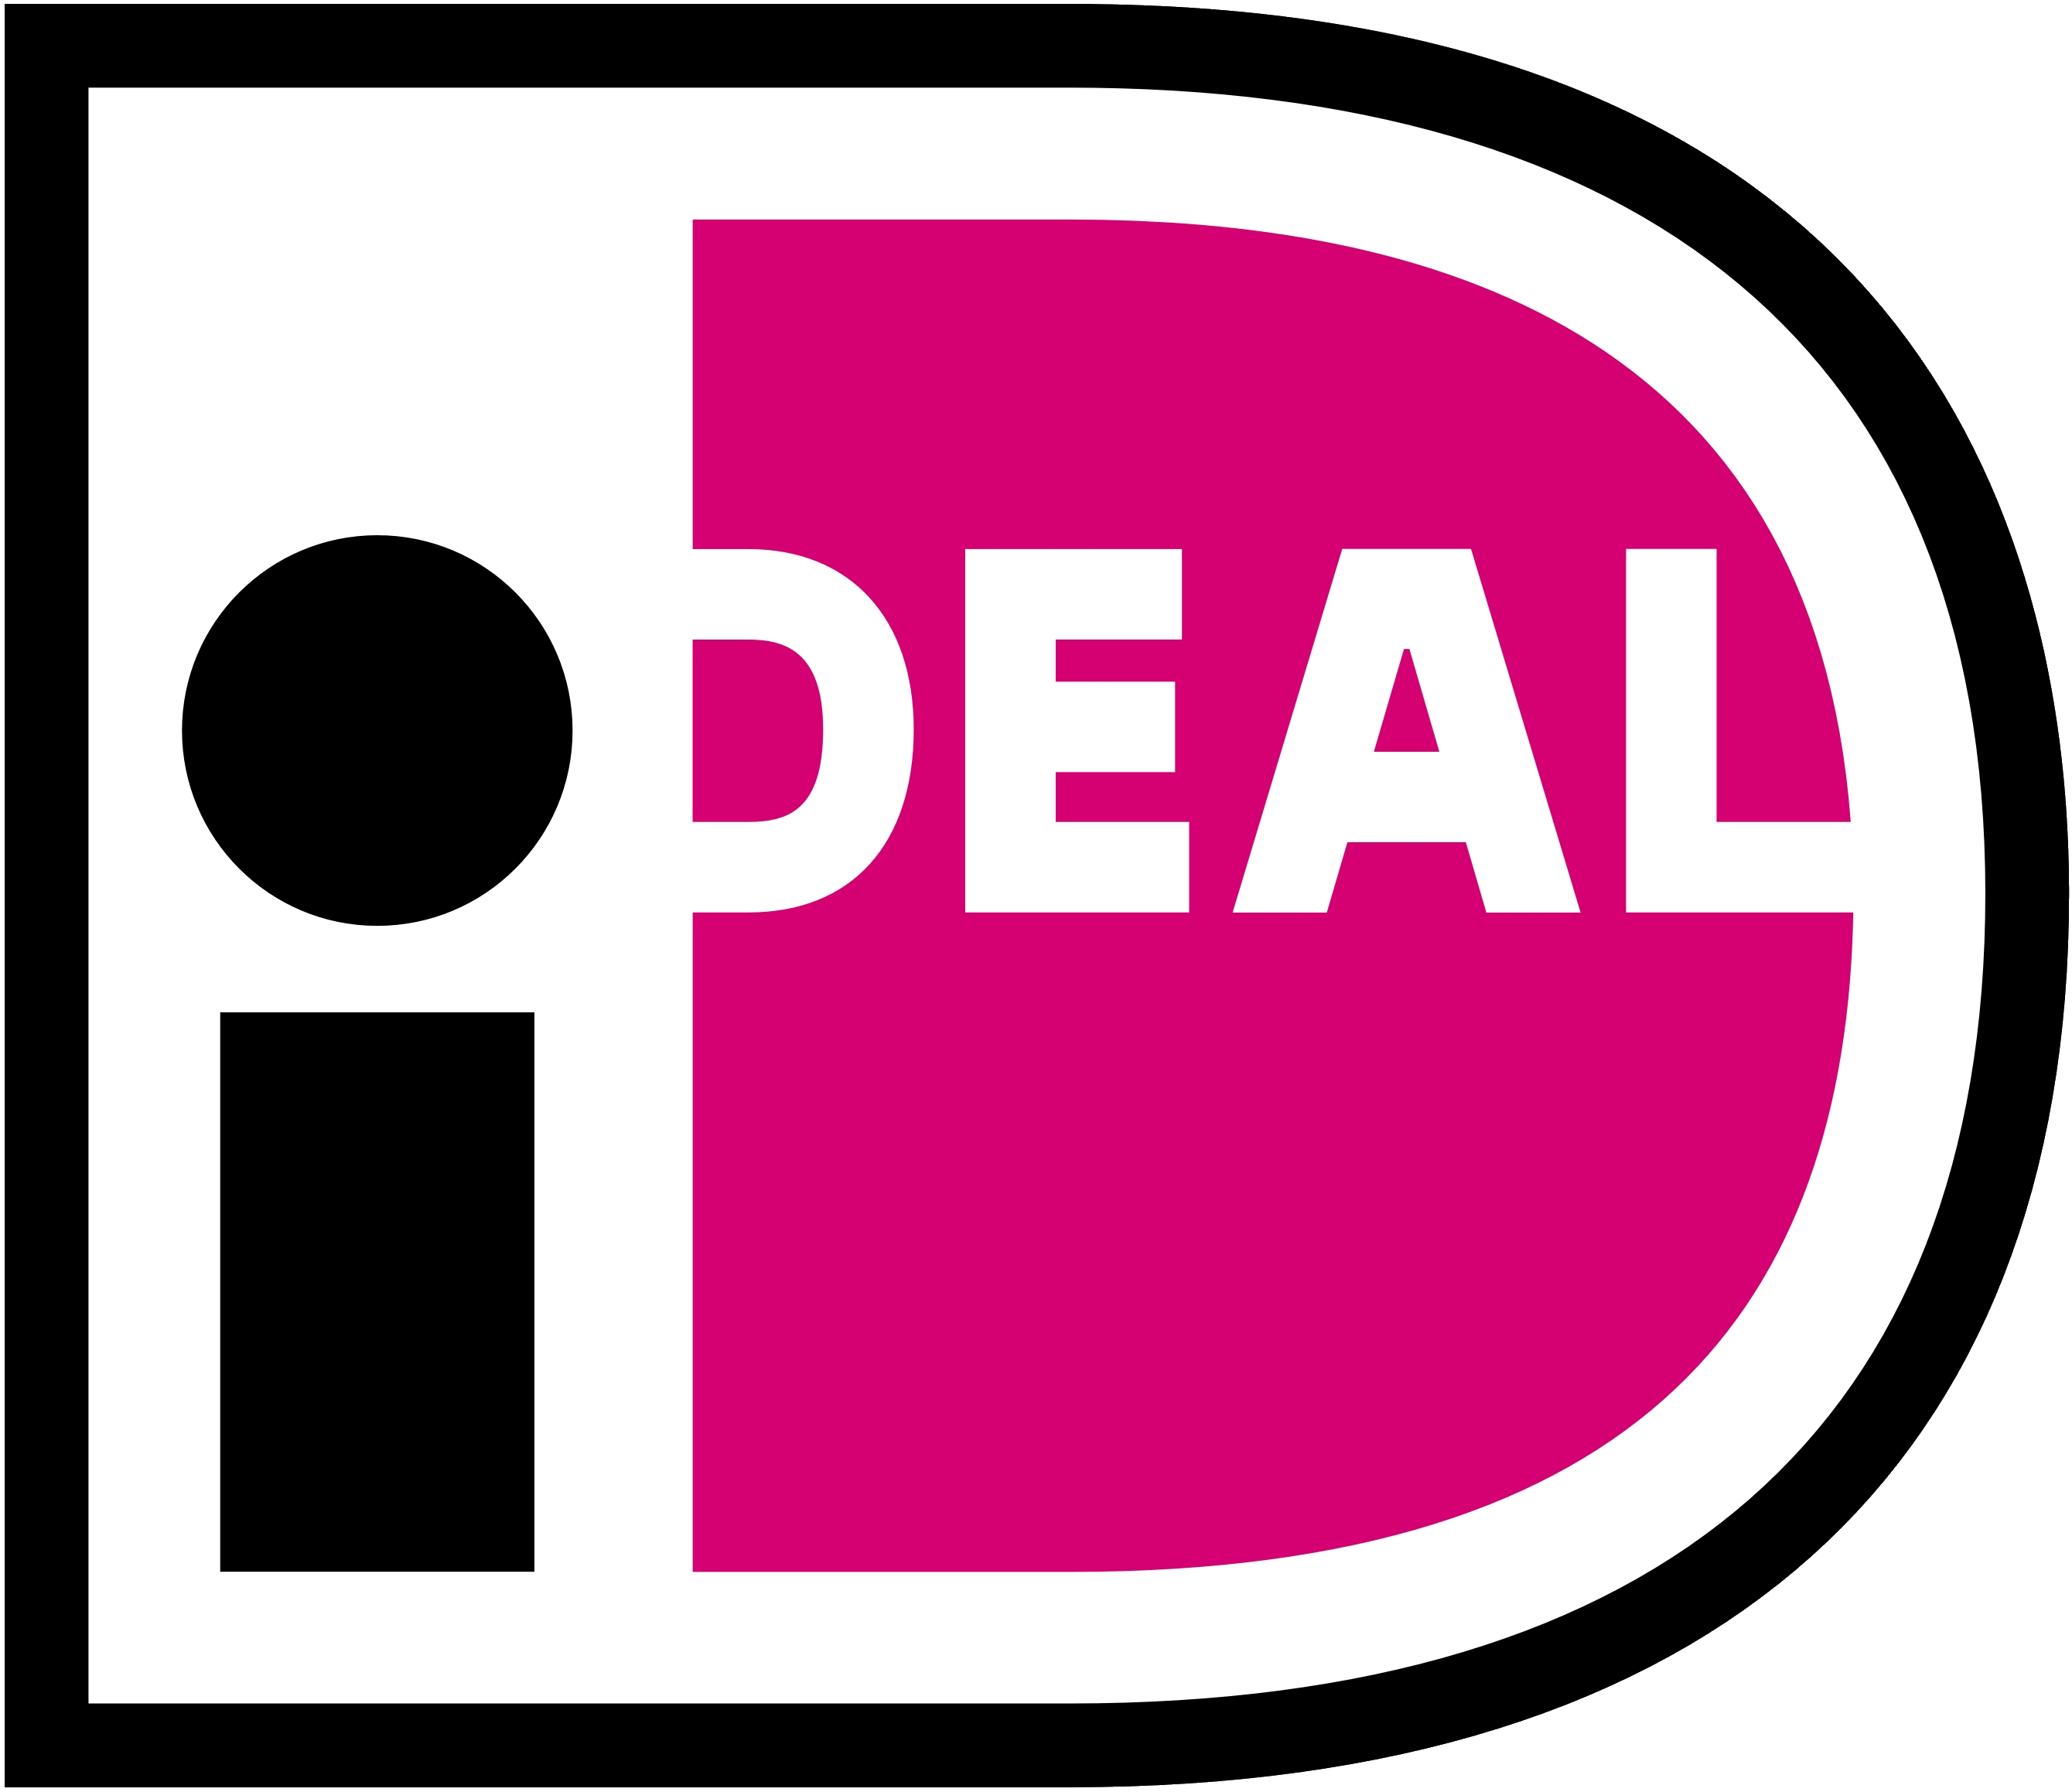 ideal-logo-icon